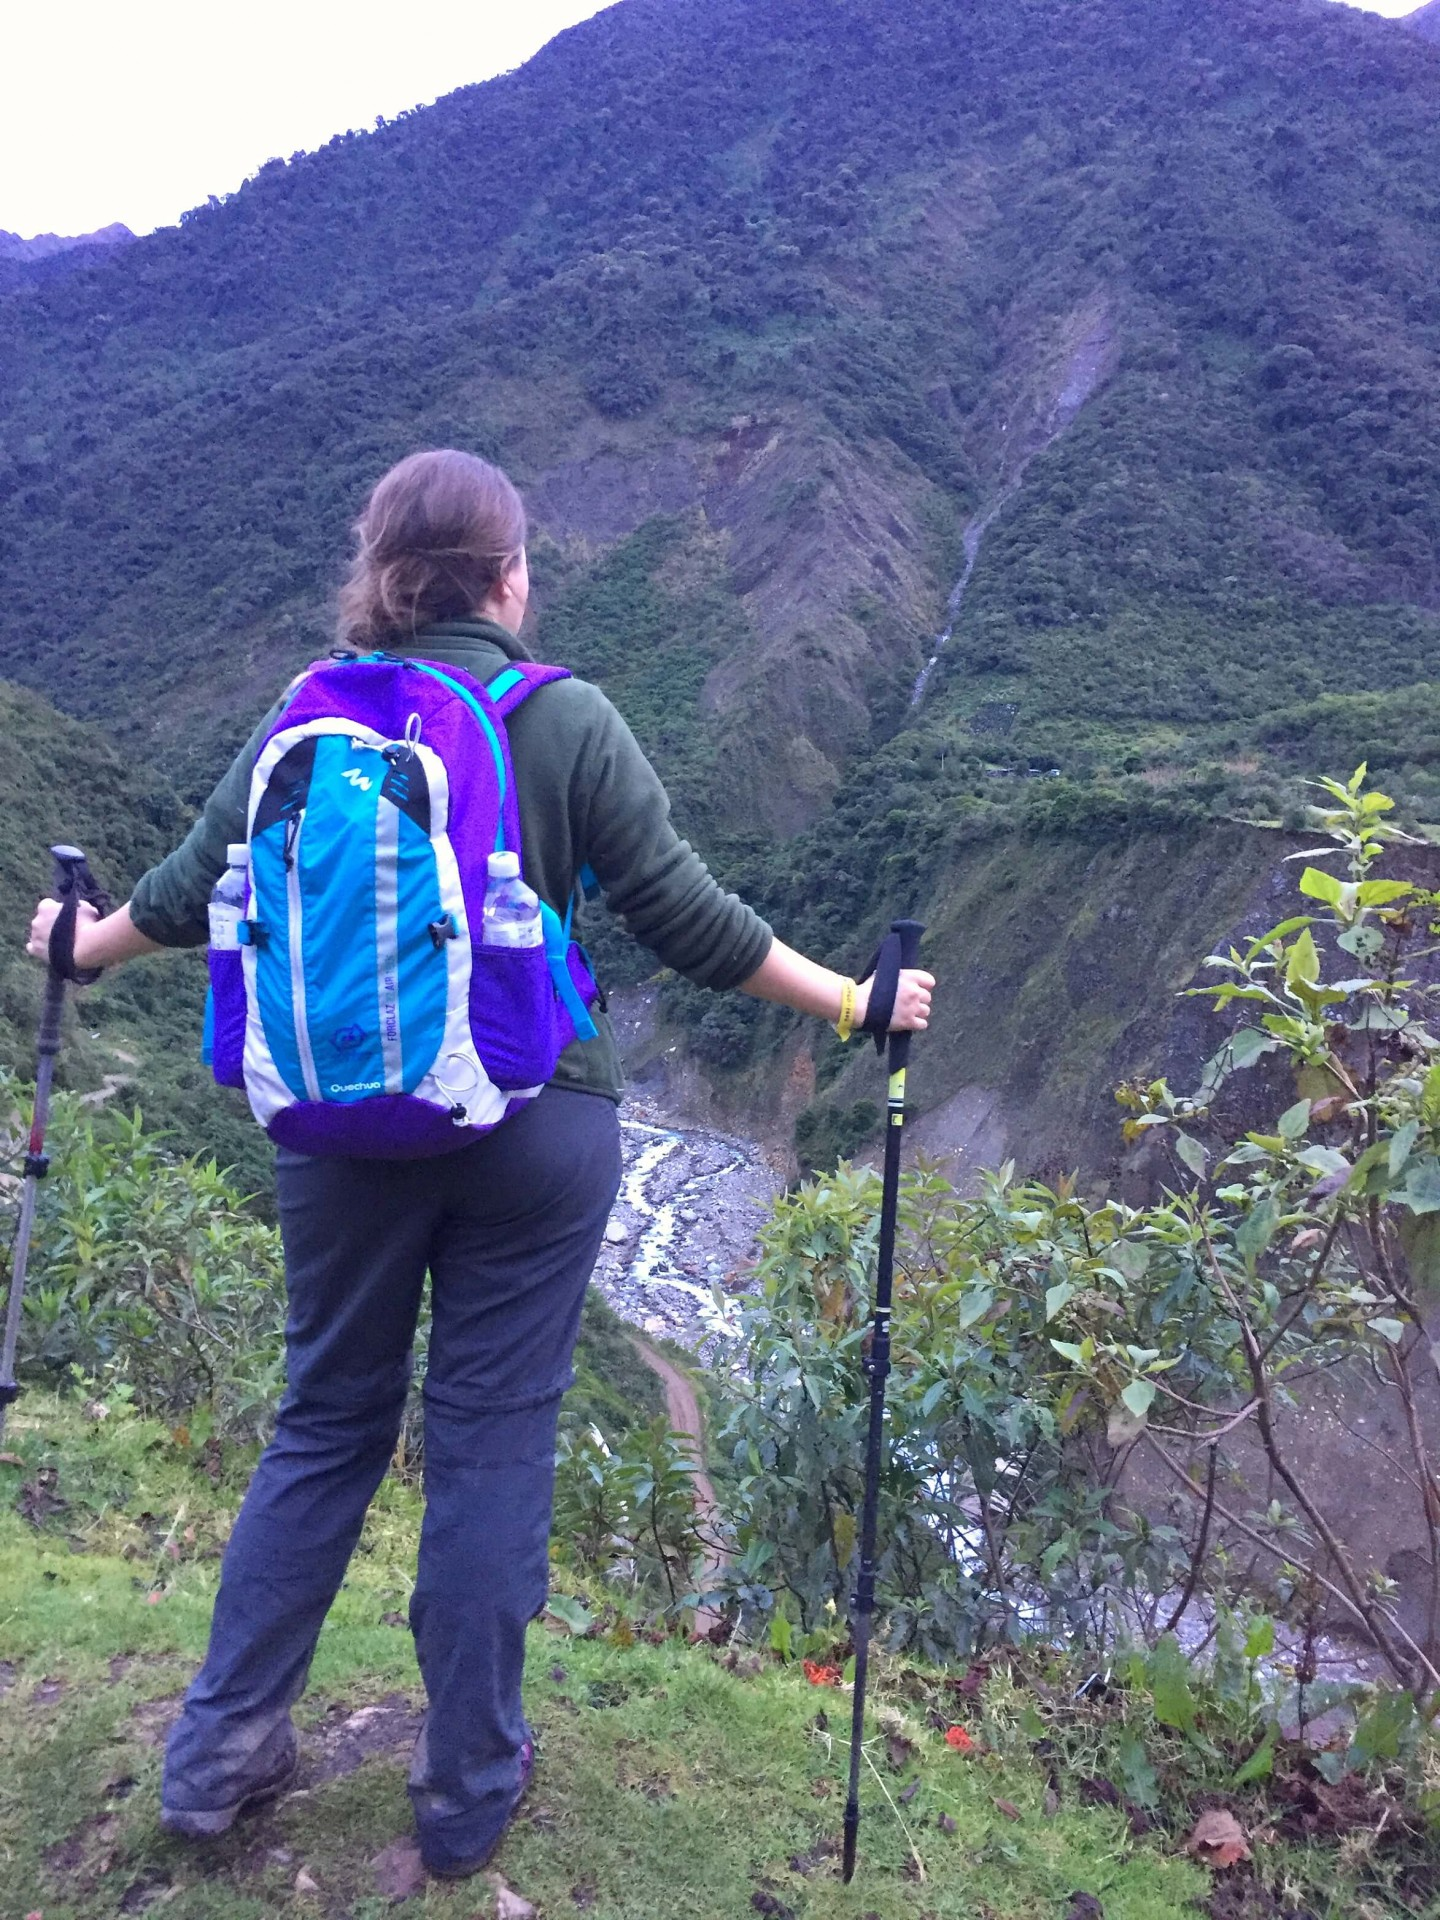 We did the 4 day Salkantay trek to Machu Picchu.